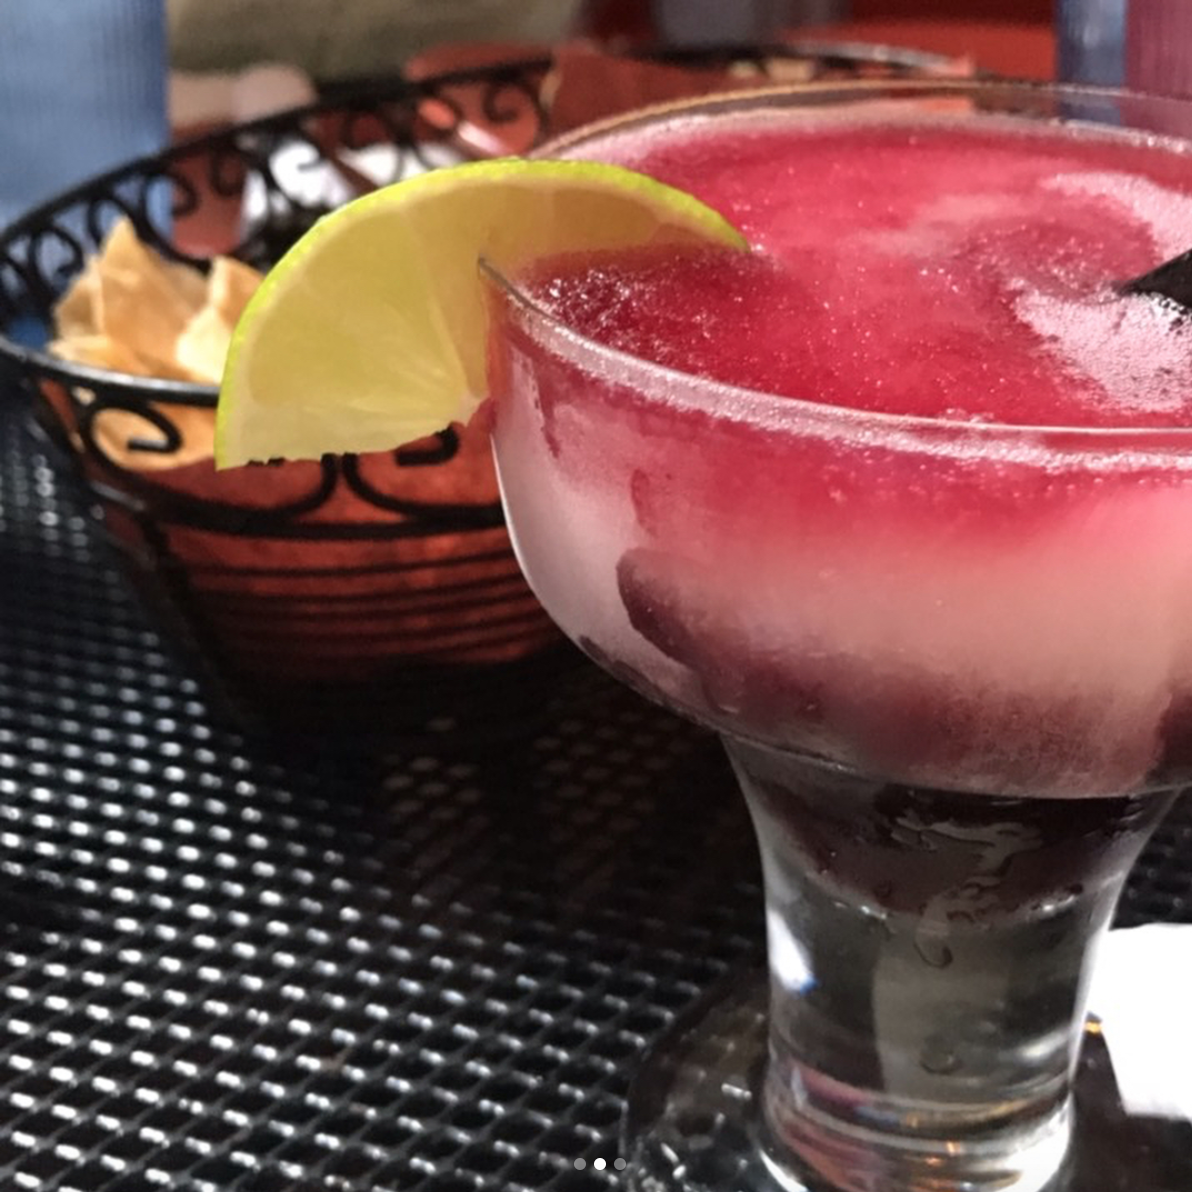 Sangria margarita at Papi's.